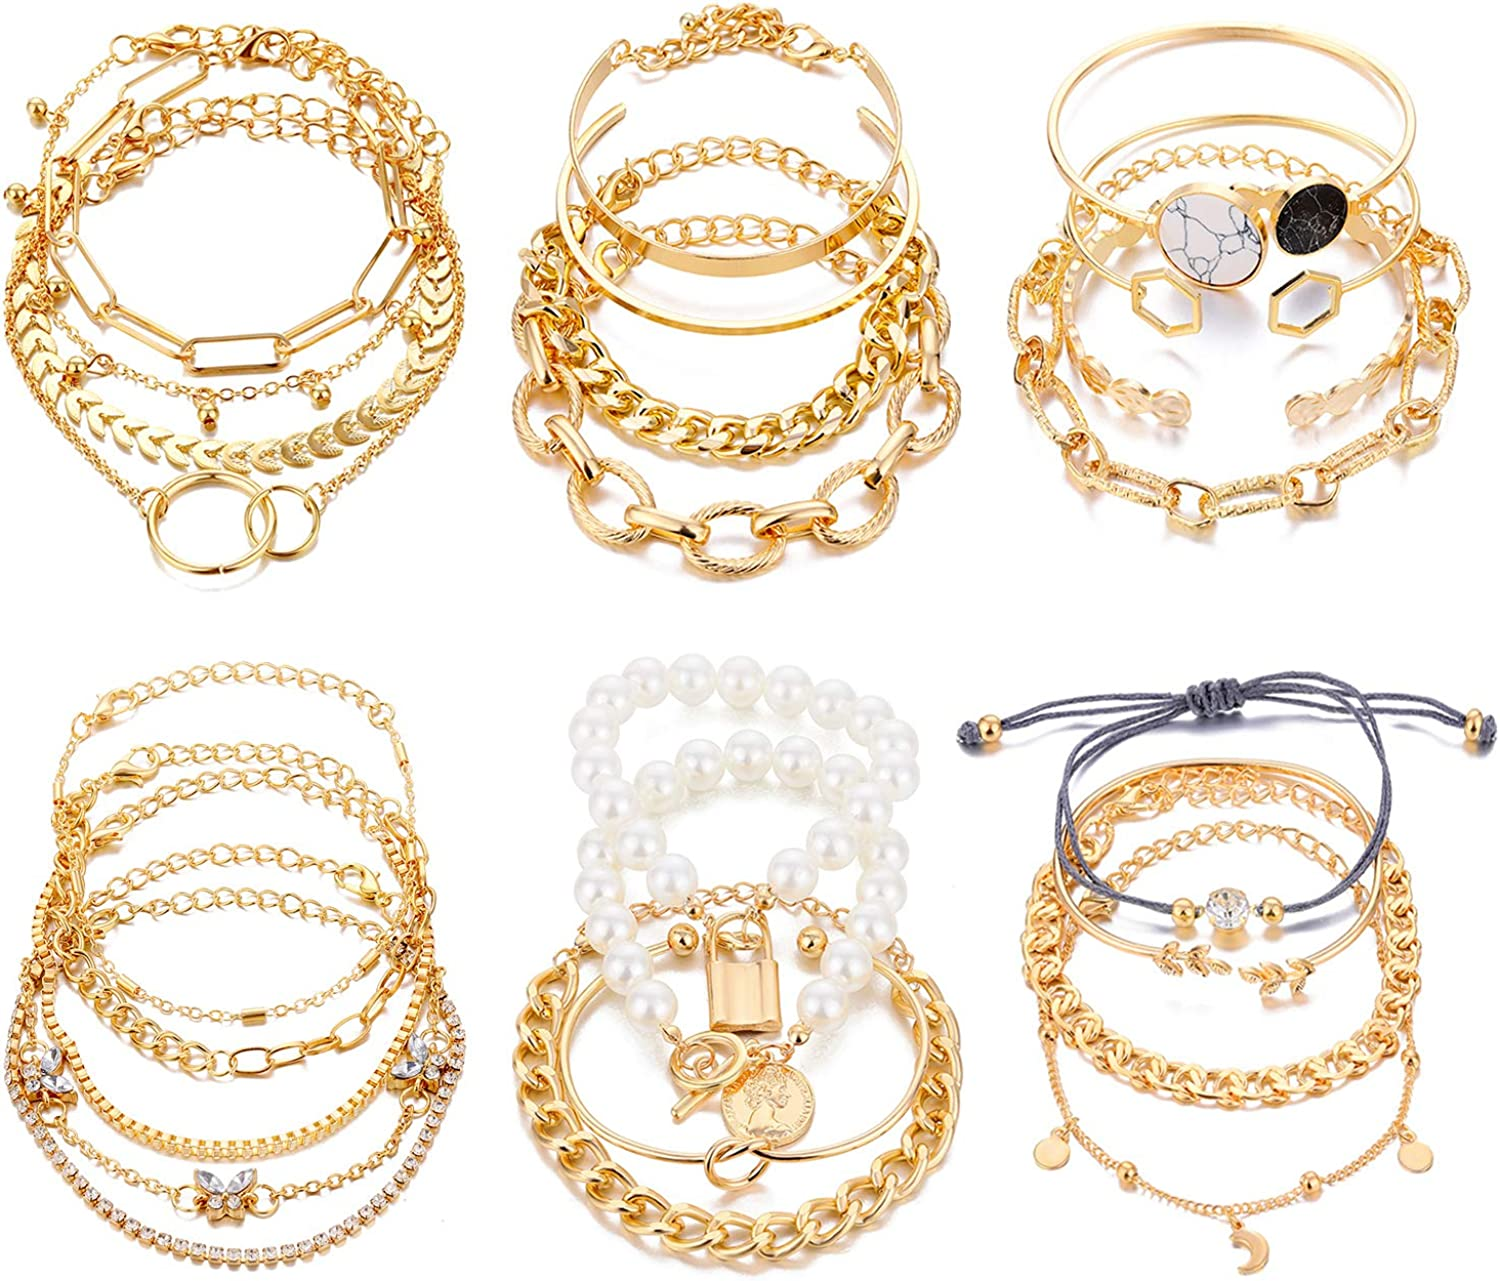 17IF 25 Pcs (6 Pack) Gold Bracelets Set for Women Girls Boho Chain Multi-layered Stackable Bangle 14K Gold Plated Mothers Day Gift Open Adjustable Cuff Italian Cuban Charm Chunky Bracelet Jewelry